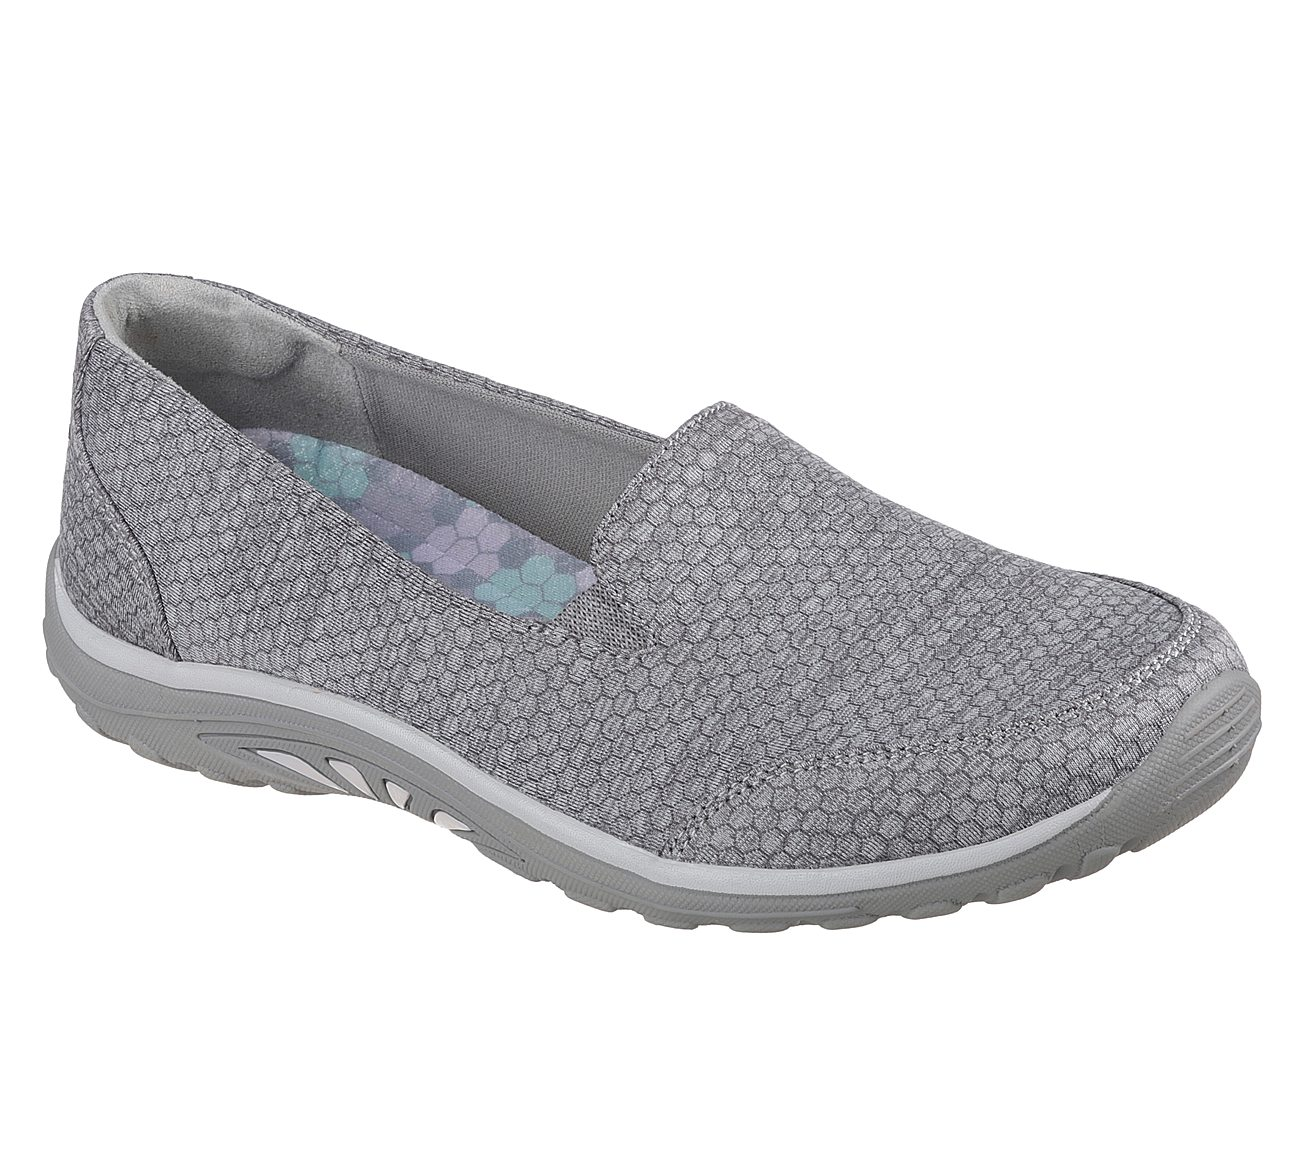 NEW SKECHERS WOMENS RELAXED FIT REGGAE FEST SUMMIT VIEW SLIP-ON SHOE